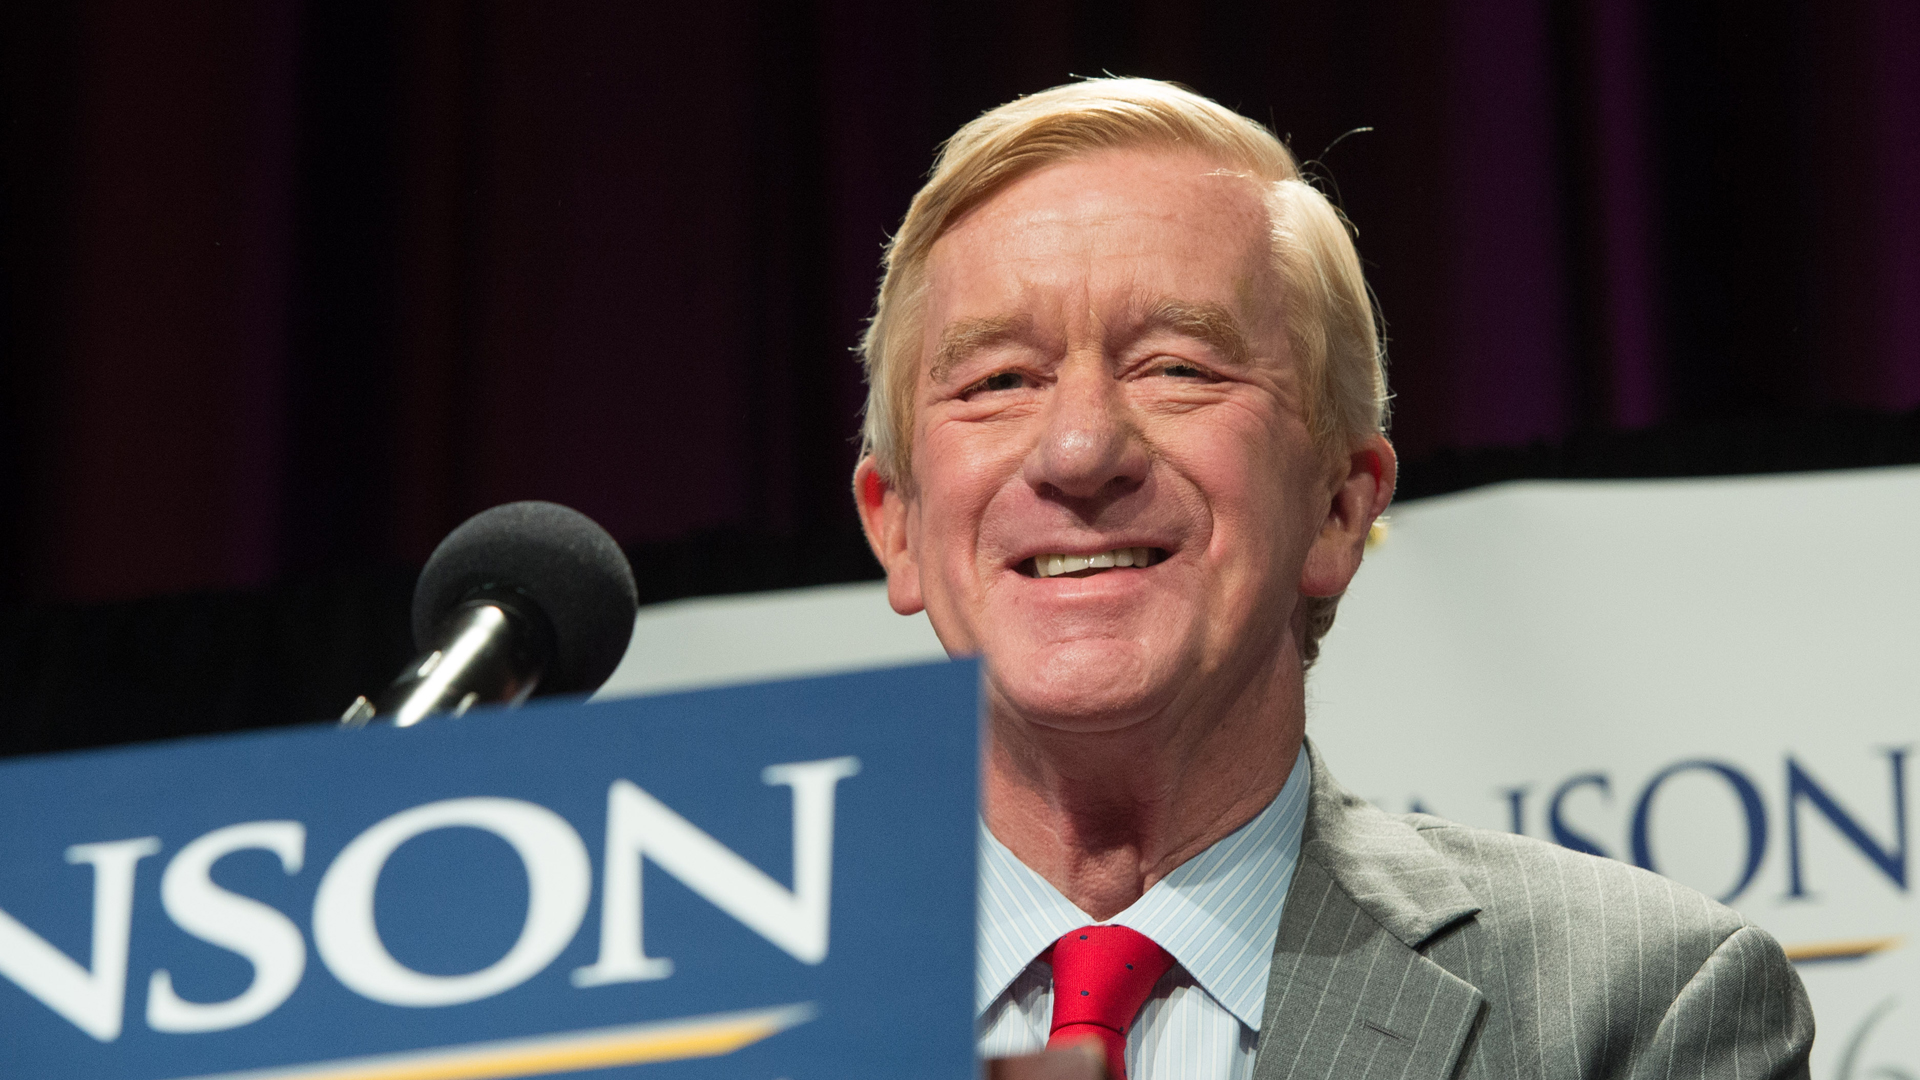 Bill Weld, the vice presidential nominee on the Libertarian ticket in 2016, speaks at a rally on September 10, 2016 in New York. (Credit: BRYAN R. SMITH/AFP/Getty Images)